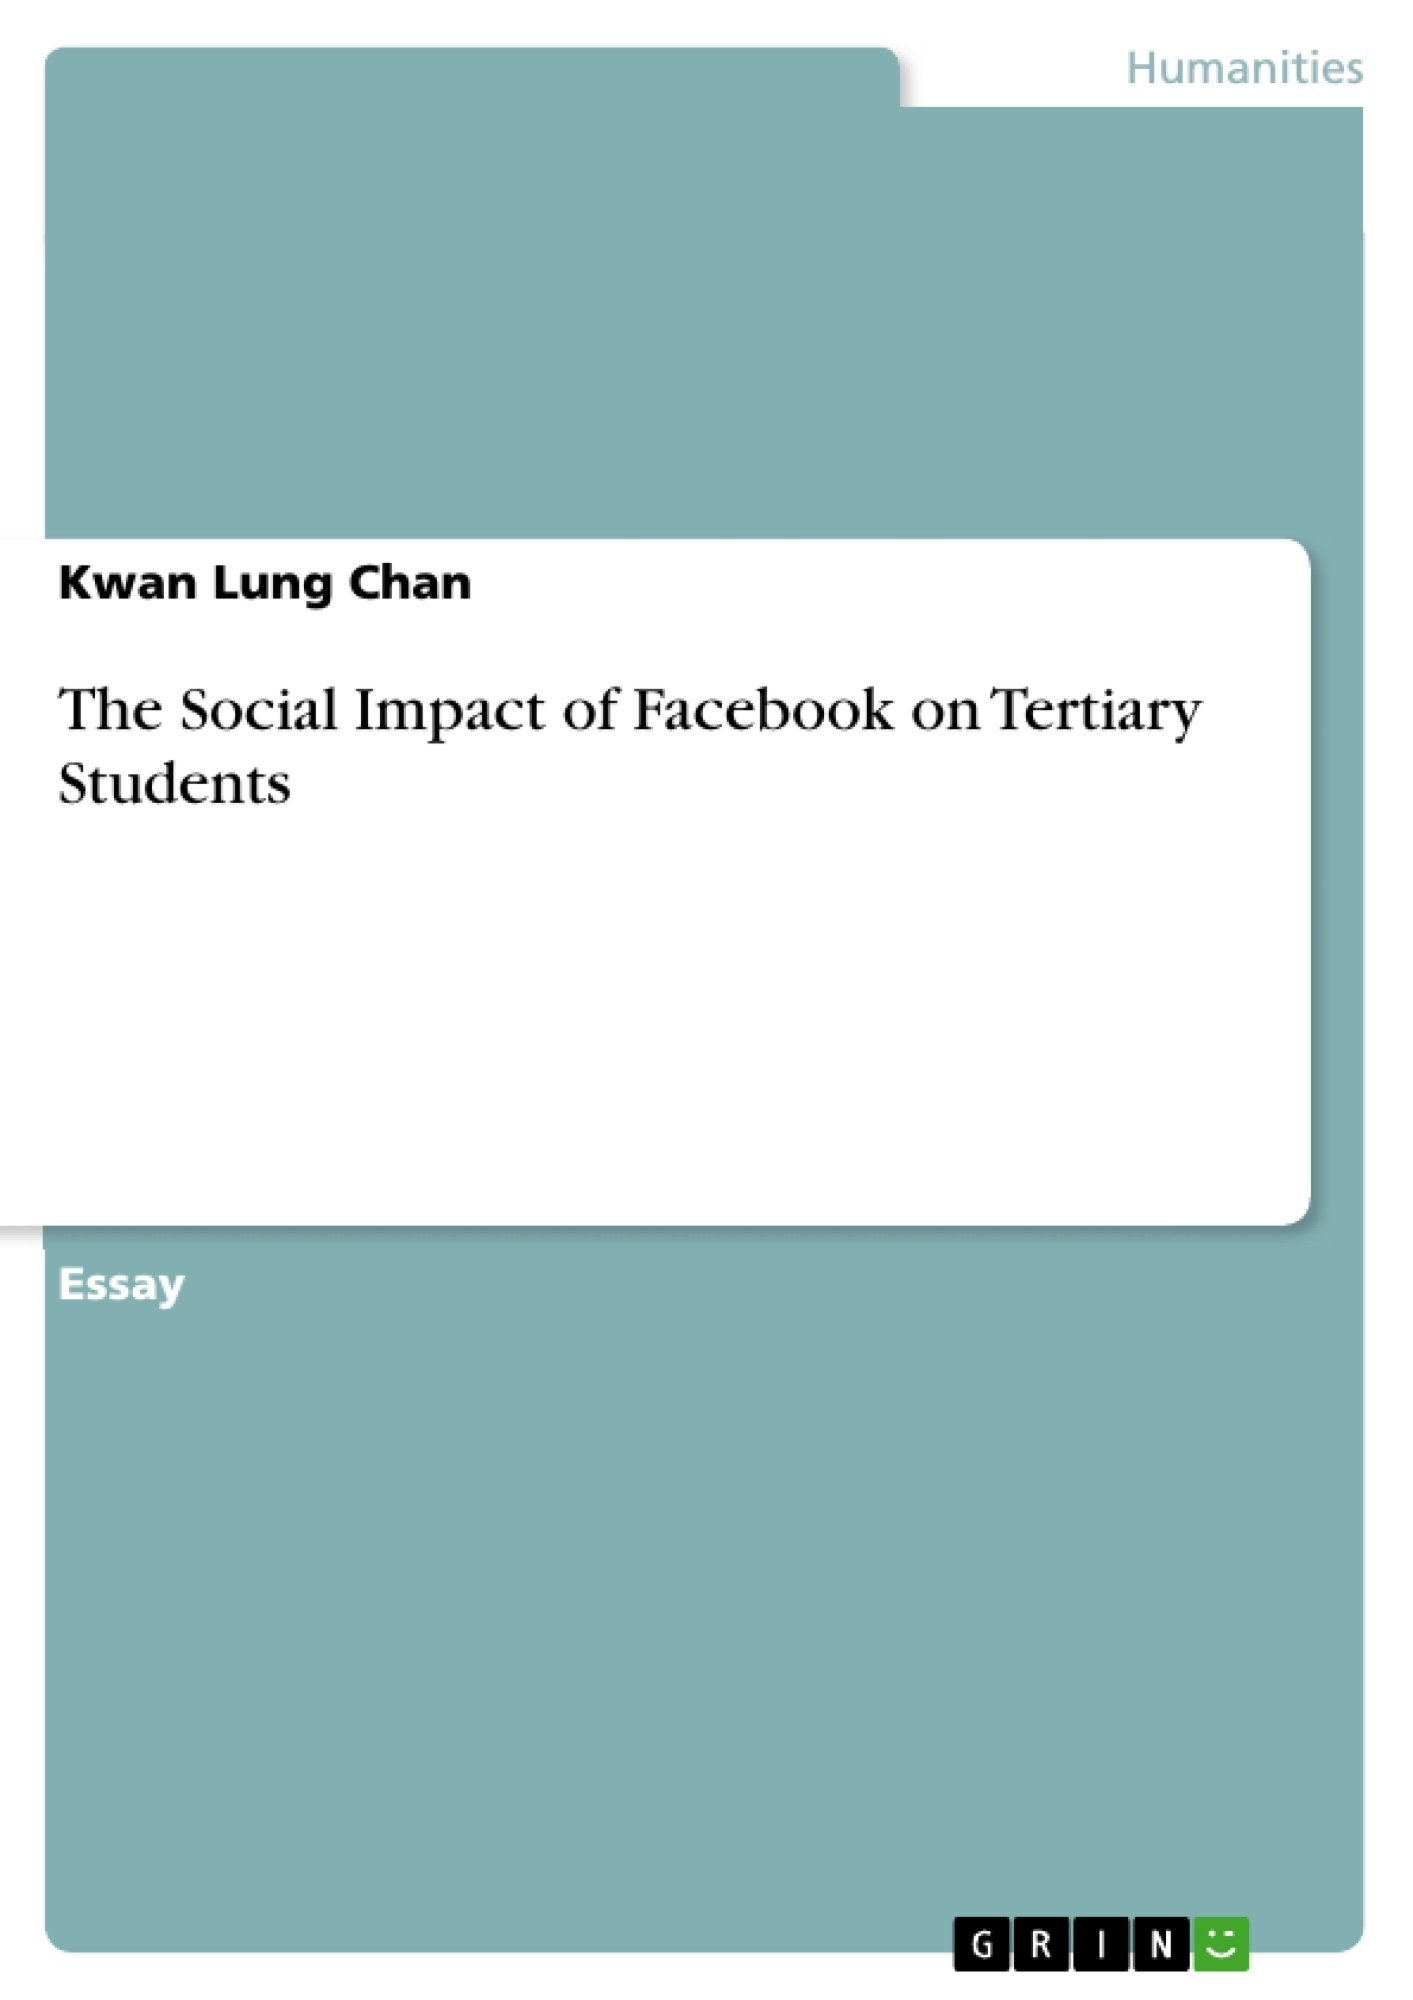 Title: The Social Impact of Facebook on Tertiary Students